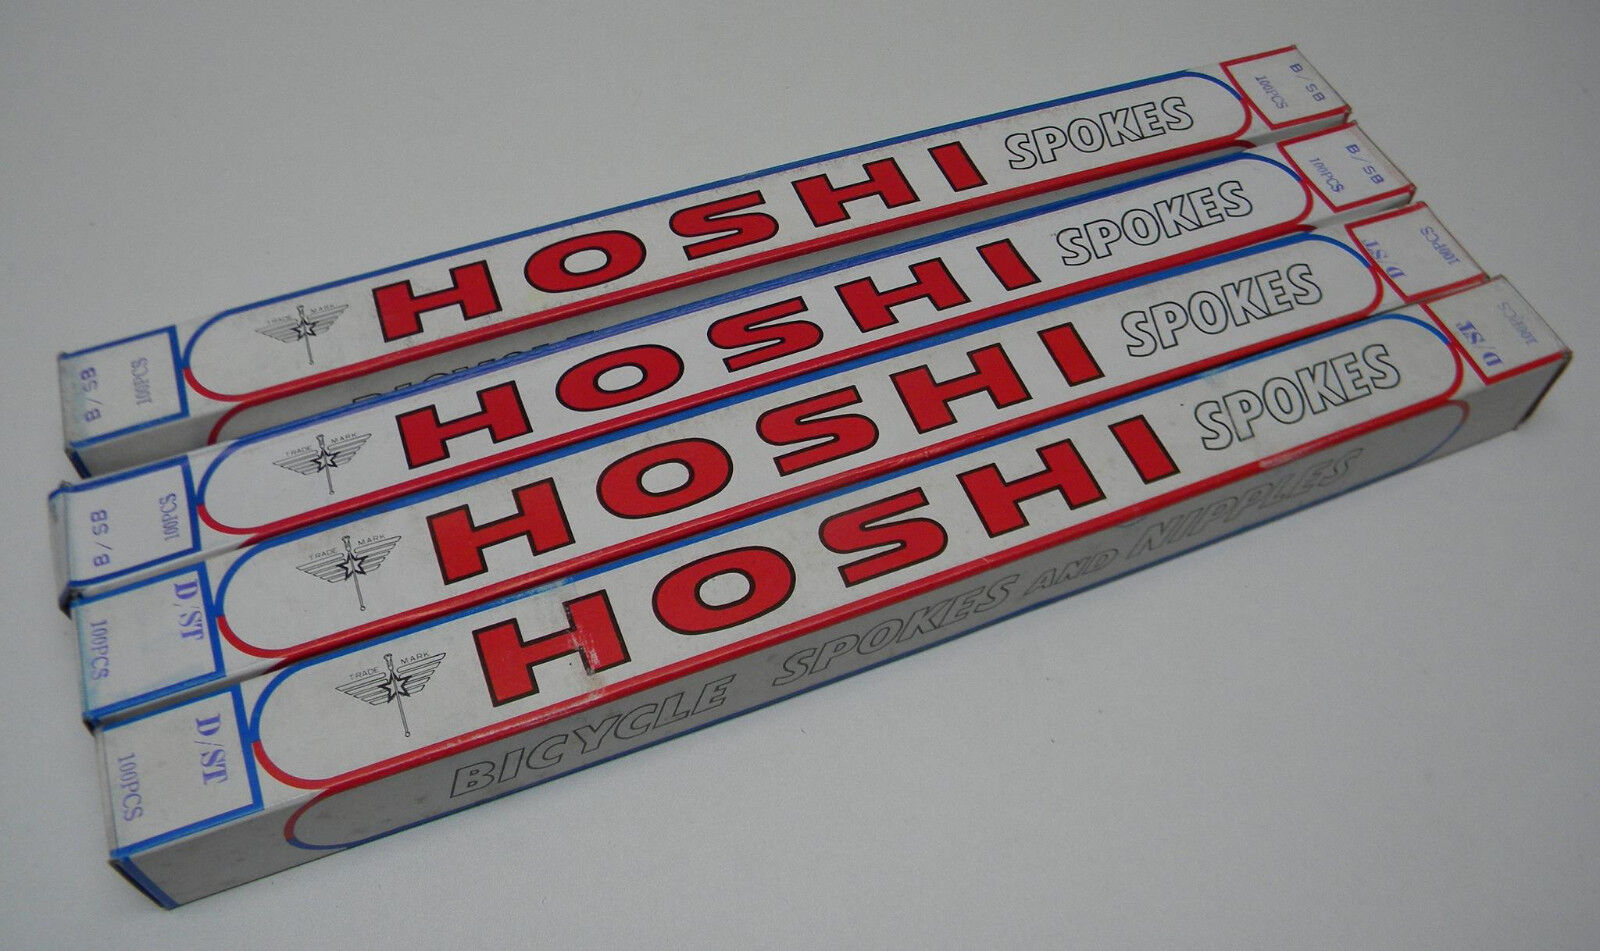 Vintage Hoshi Stainless Butted Spokes 298 300 303 306 308mm 100pcs (121)